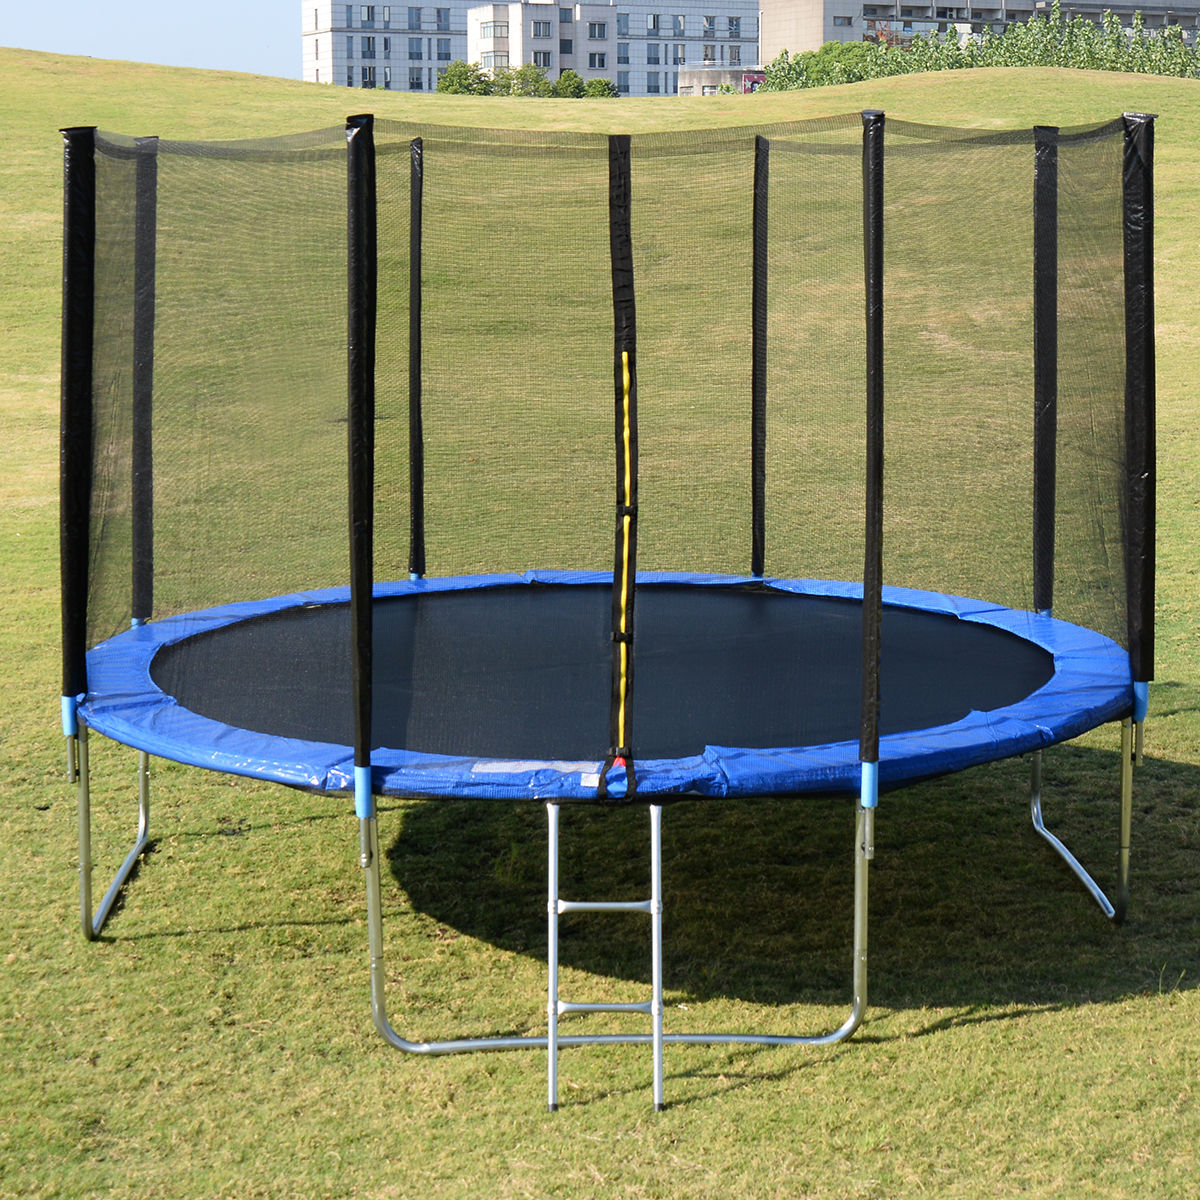 New 14ft Trampoline Combo Bounce Jump Safety Enclosure Net: NEW HEAVY DUTY TRAMPOLINE 14 FT WITH LADDER & SAFETY NET